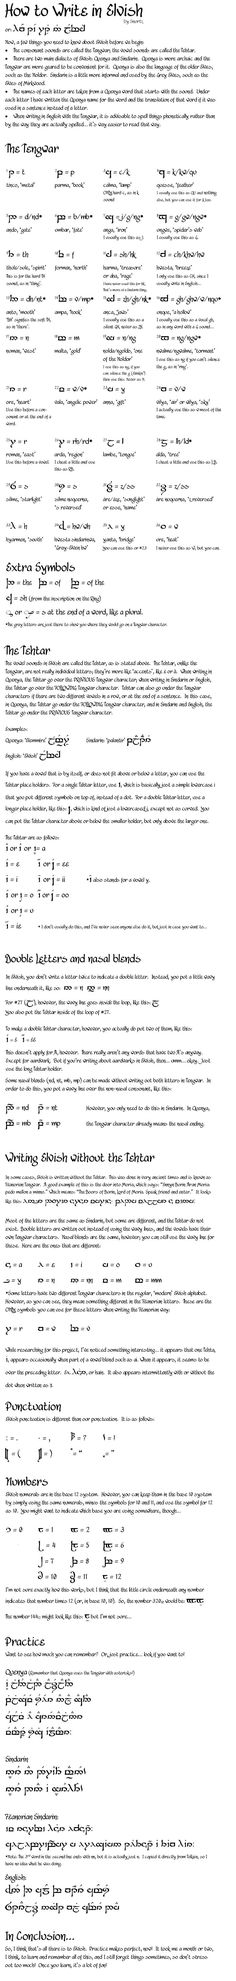 TUTORIAL: How to write in Elvish..